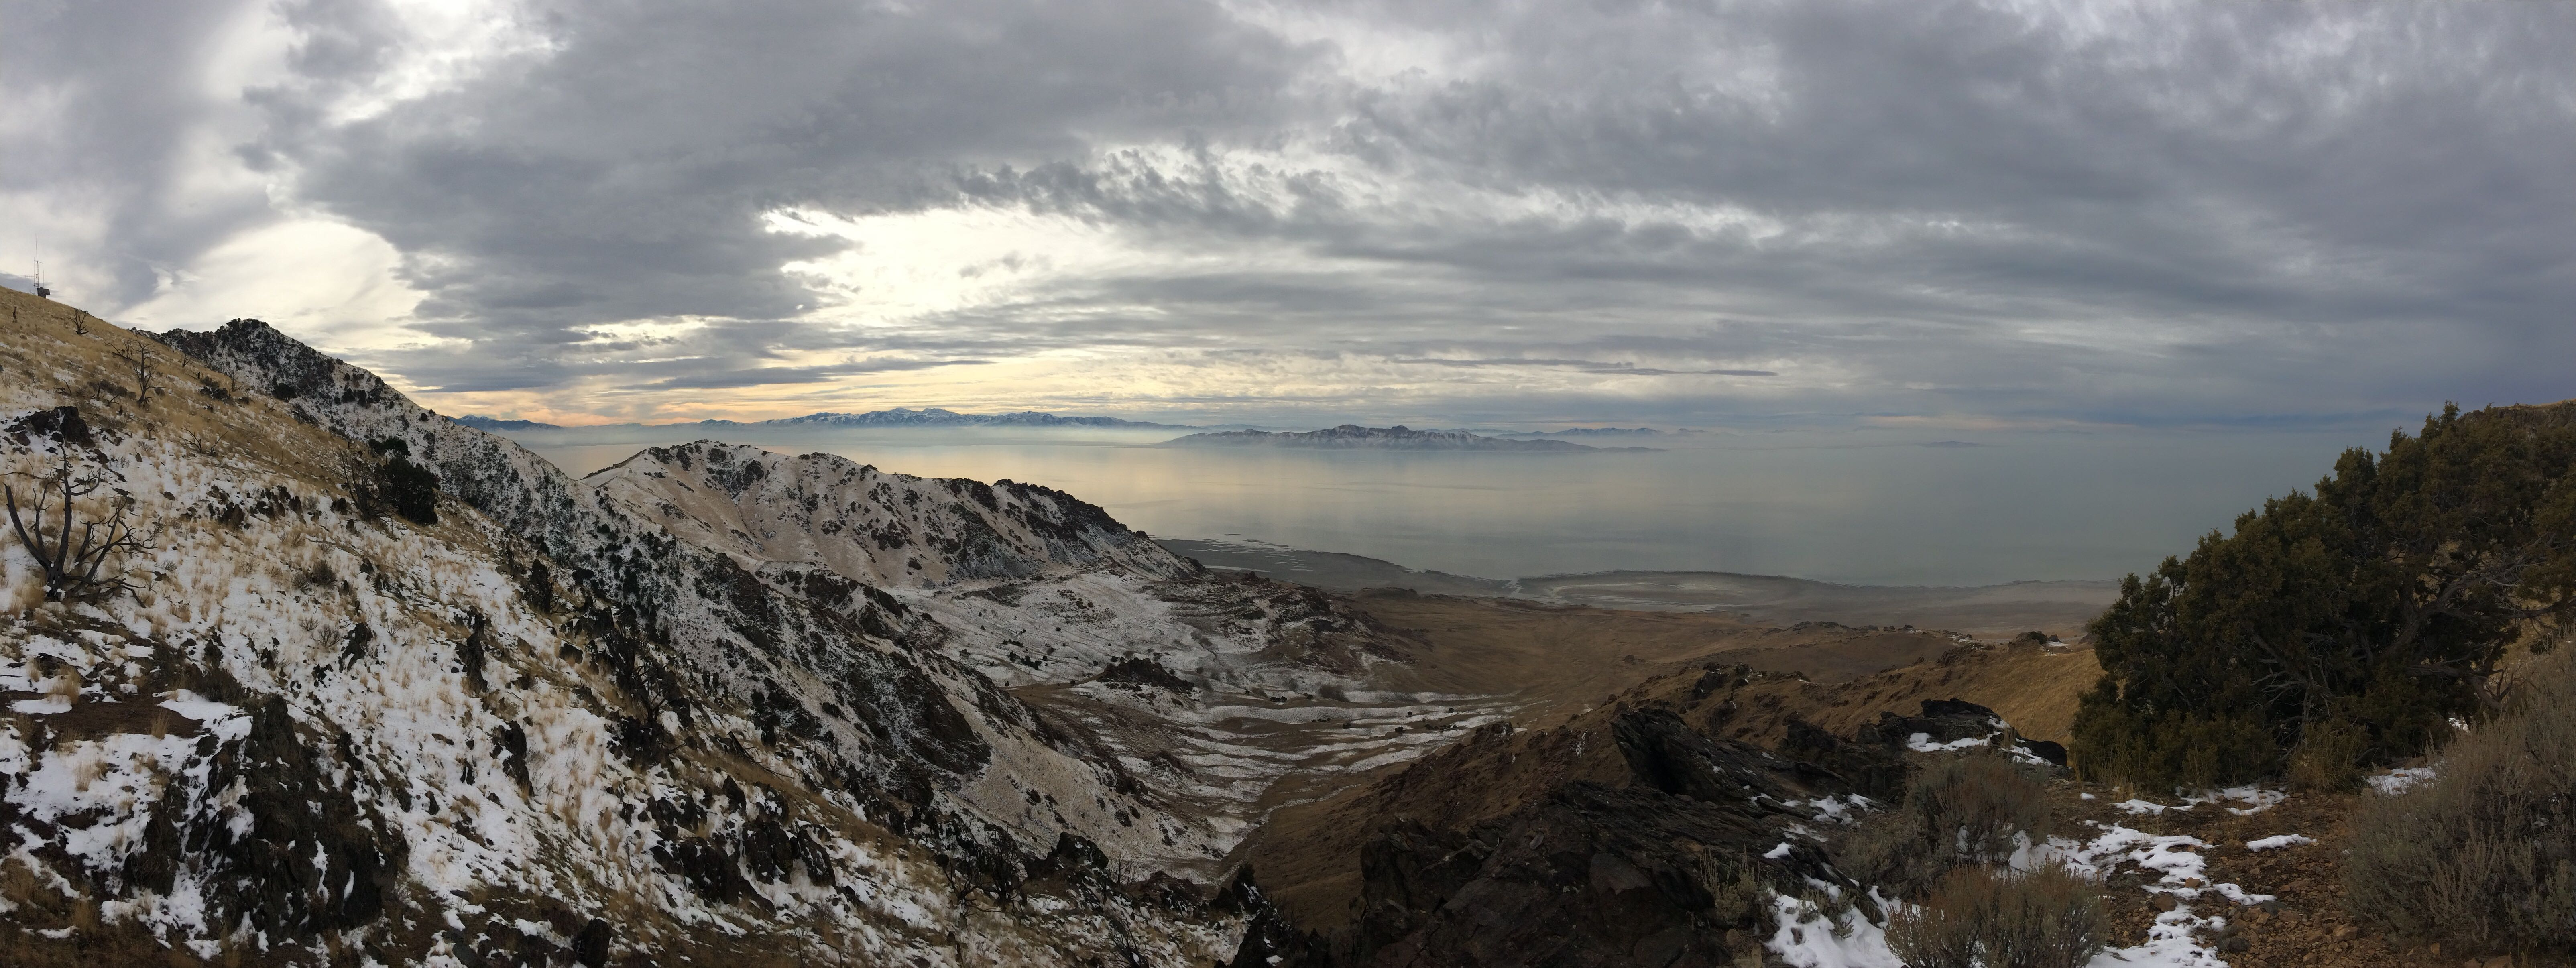 Spectacular images from our Antelope Island lab hike this week